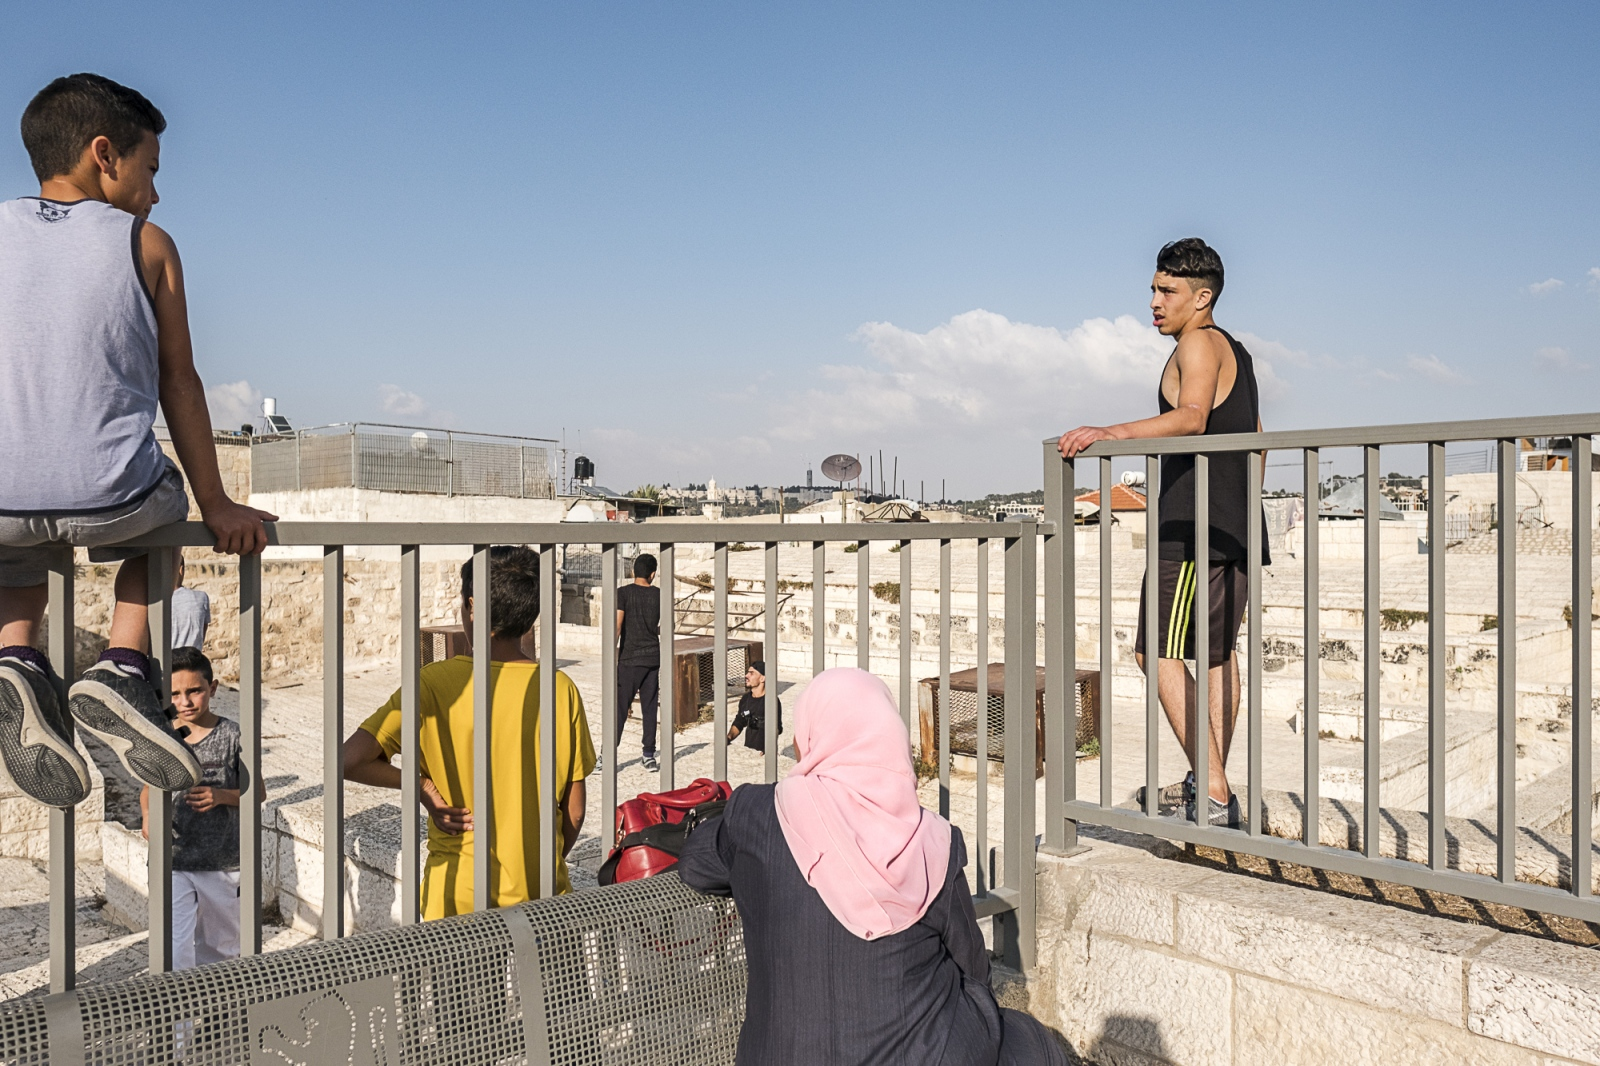 Taking a break from doing Parkour on the rooftops of the Old City of Jerusalem